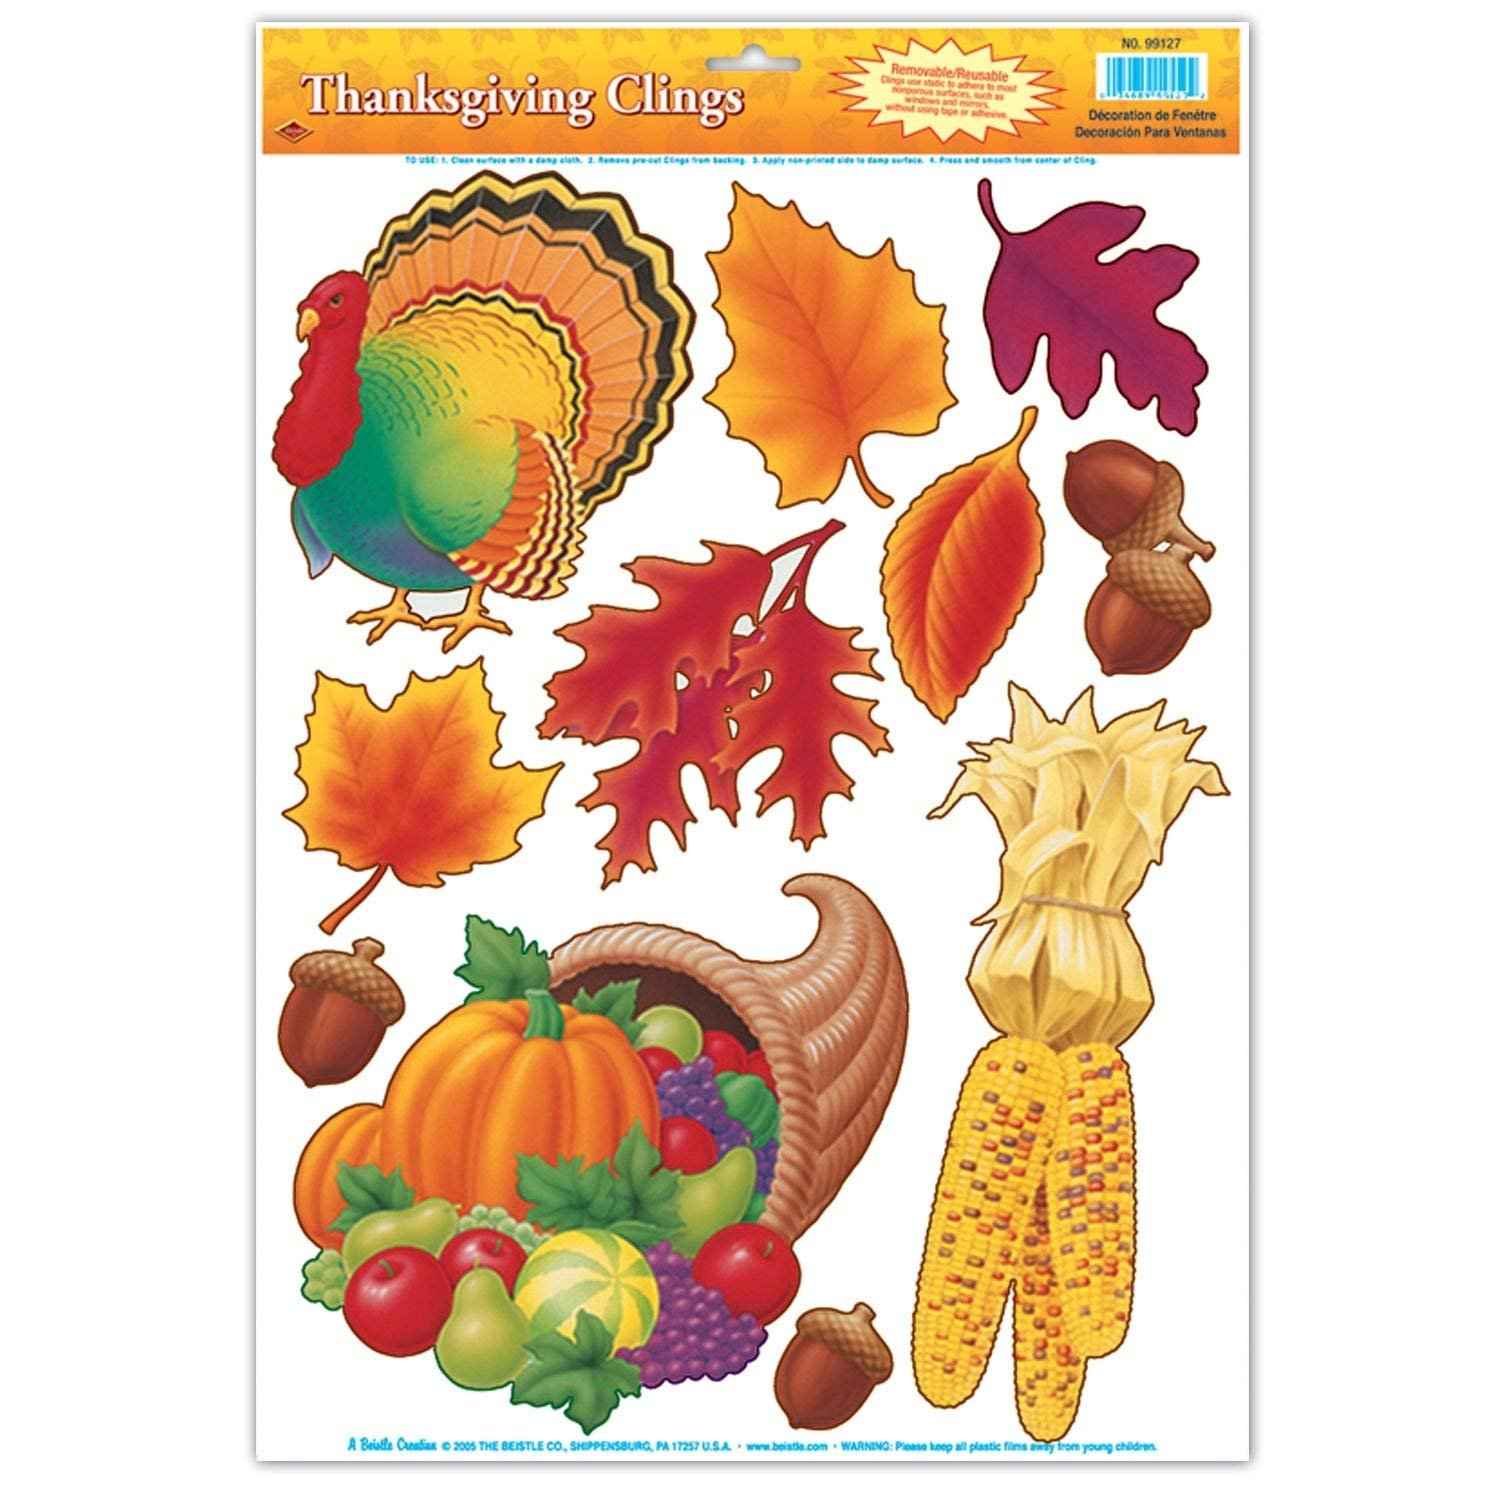 Indian Corn Seasonal Static Decals Featuring Fall Leaves and Acorns Curated Nirvana Autumn /& Thanksgiving Holiday Window Clings Cornucopia and More Harvest Time Pumpkins 33 Total Turkey